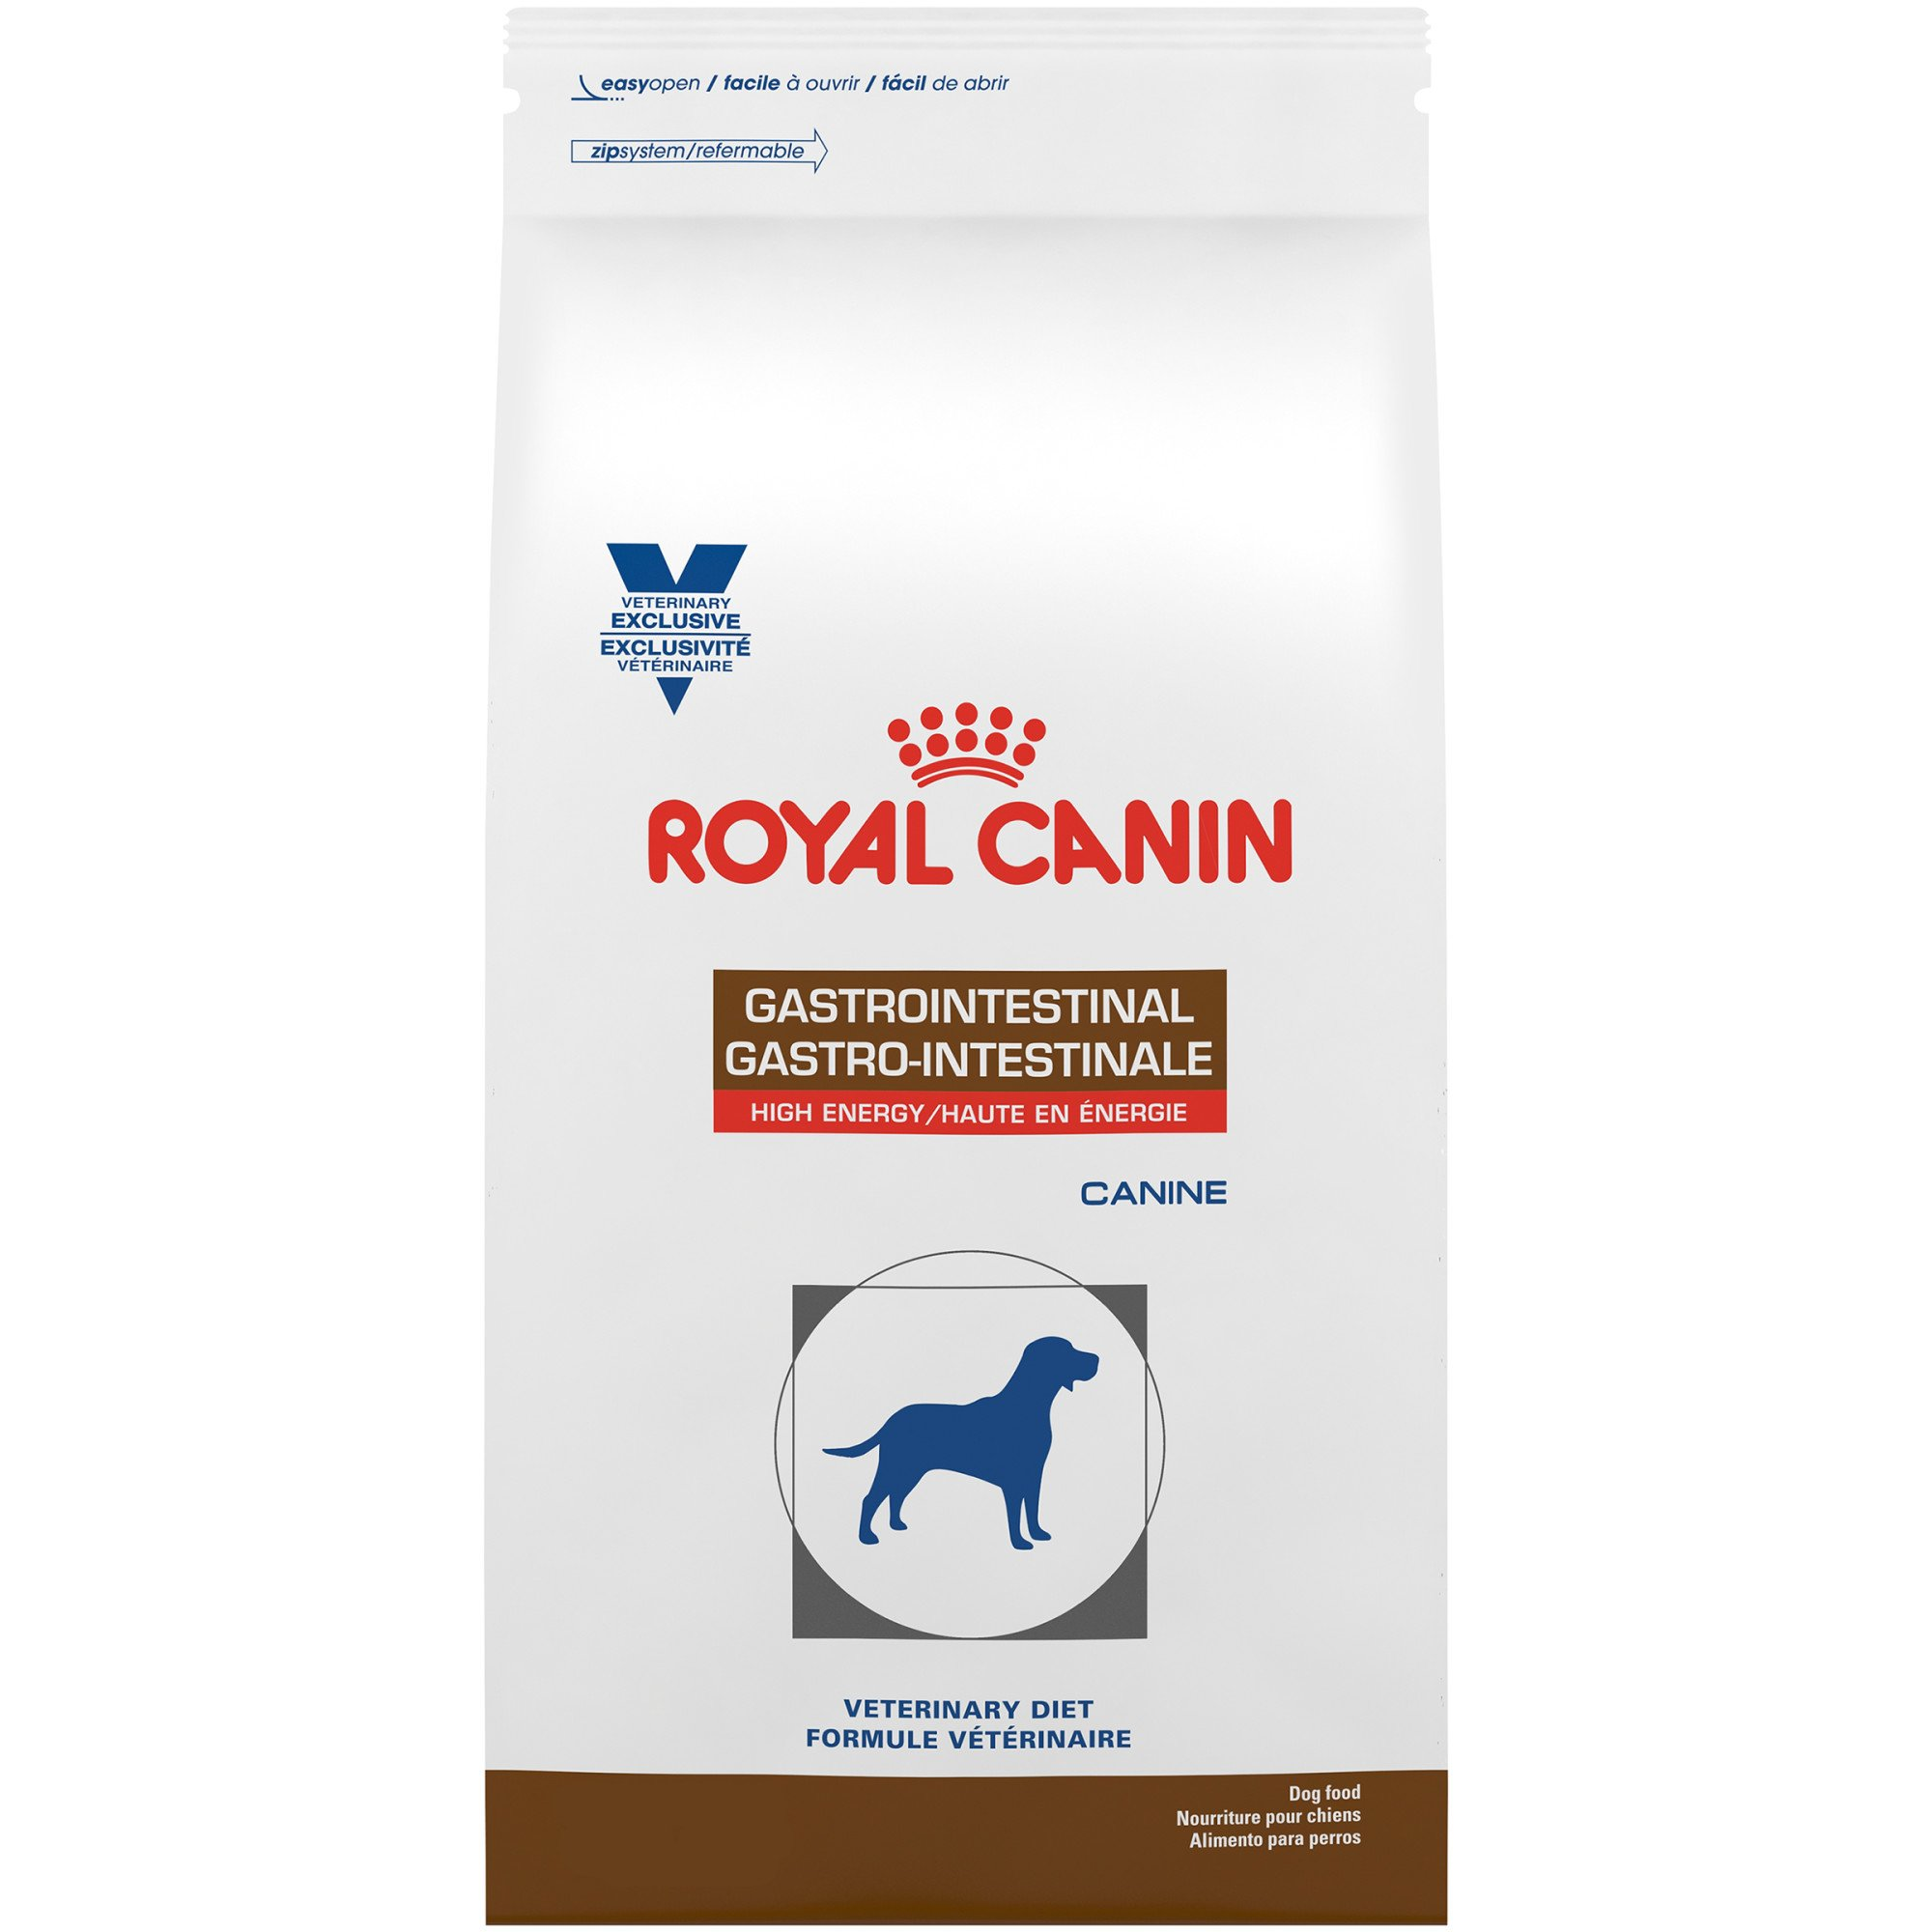 royal canin veterinary diet canine gastrointestinal high. Black Bedroom Furniture Sets. Home Design Ideas